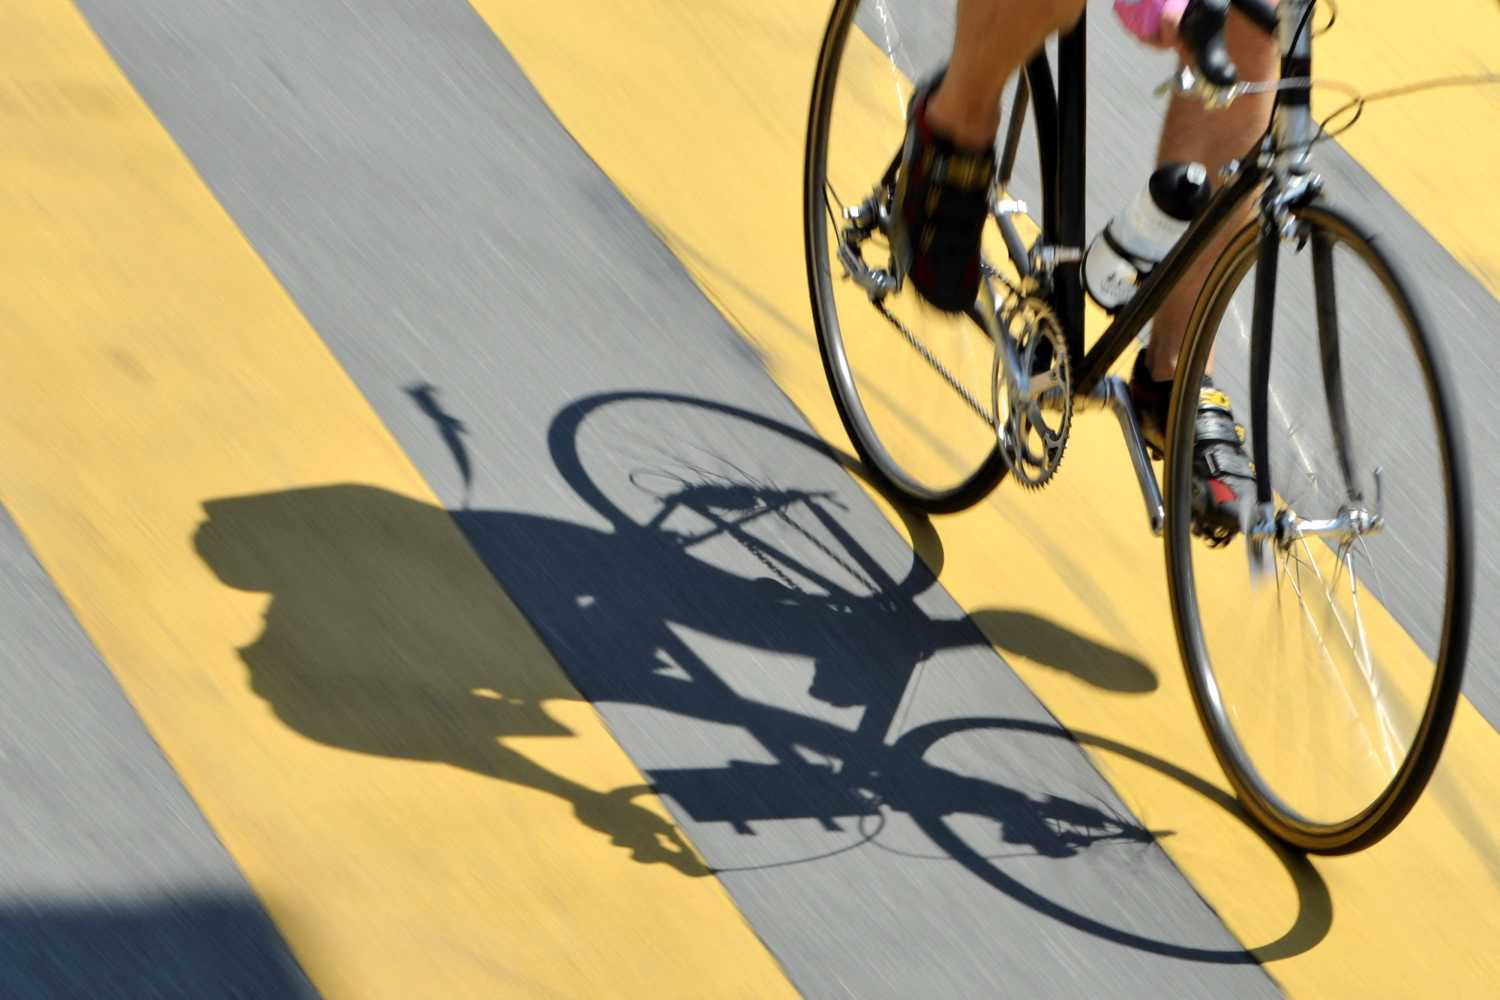 Why Switzerland is running out of bicycles